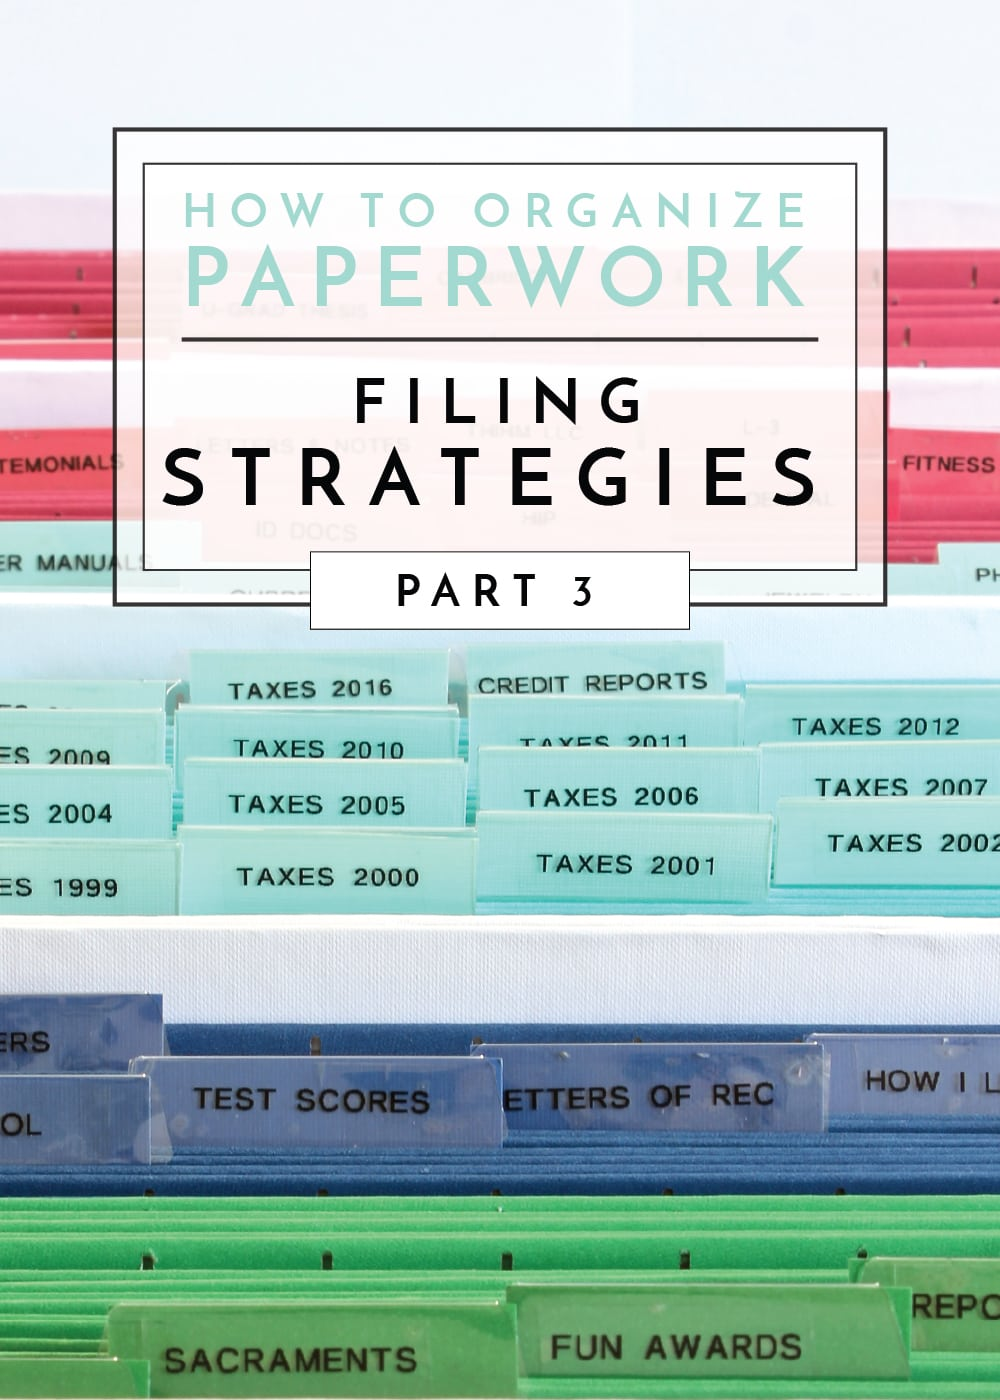 Figuring out how best to organize and file household paperwork can be a frustrating experience! Use these Paper Filing Strategies to cut through the clutter and create a system that works!